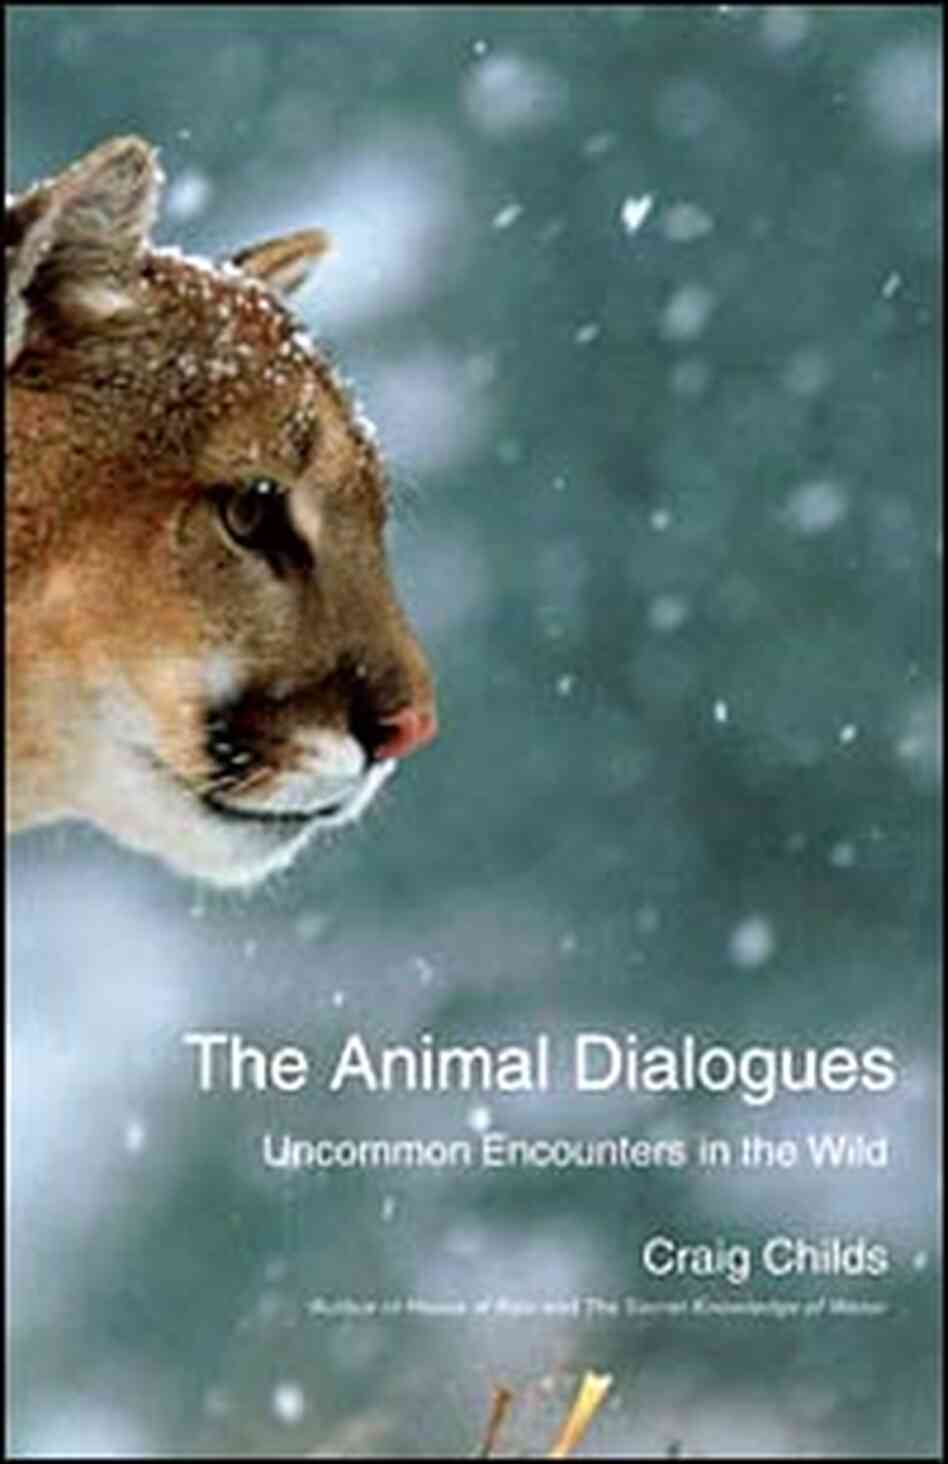 'The Animal Dialogues'